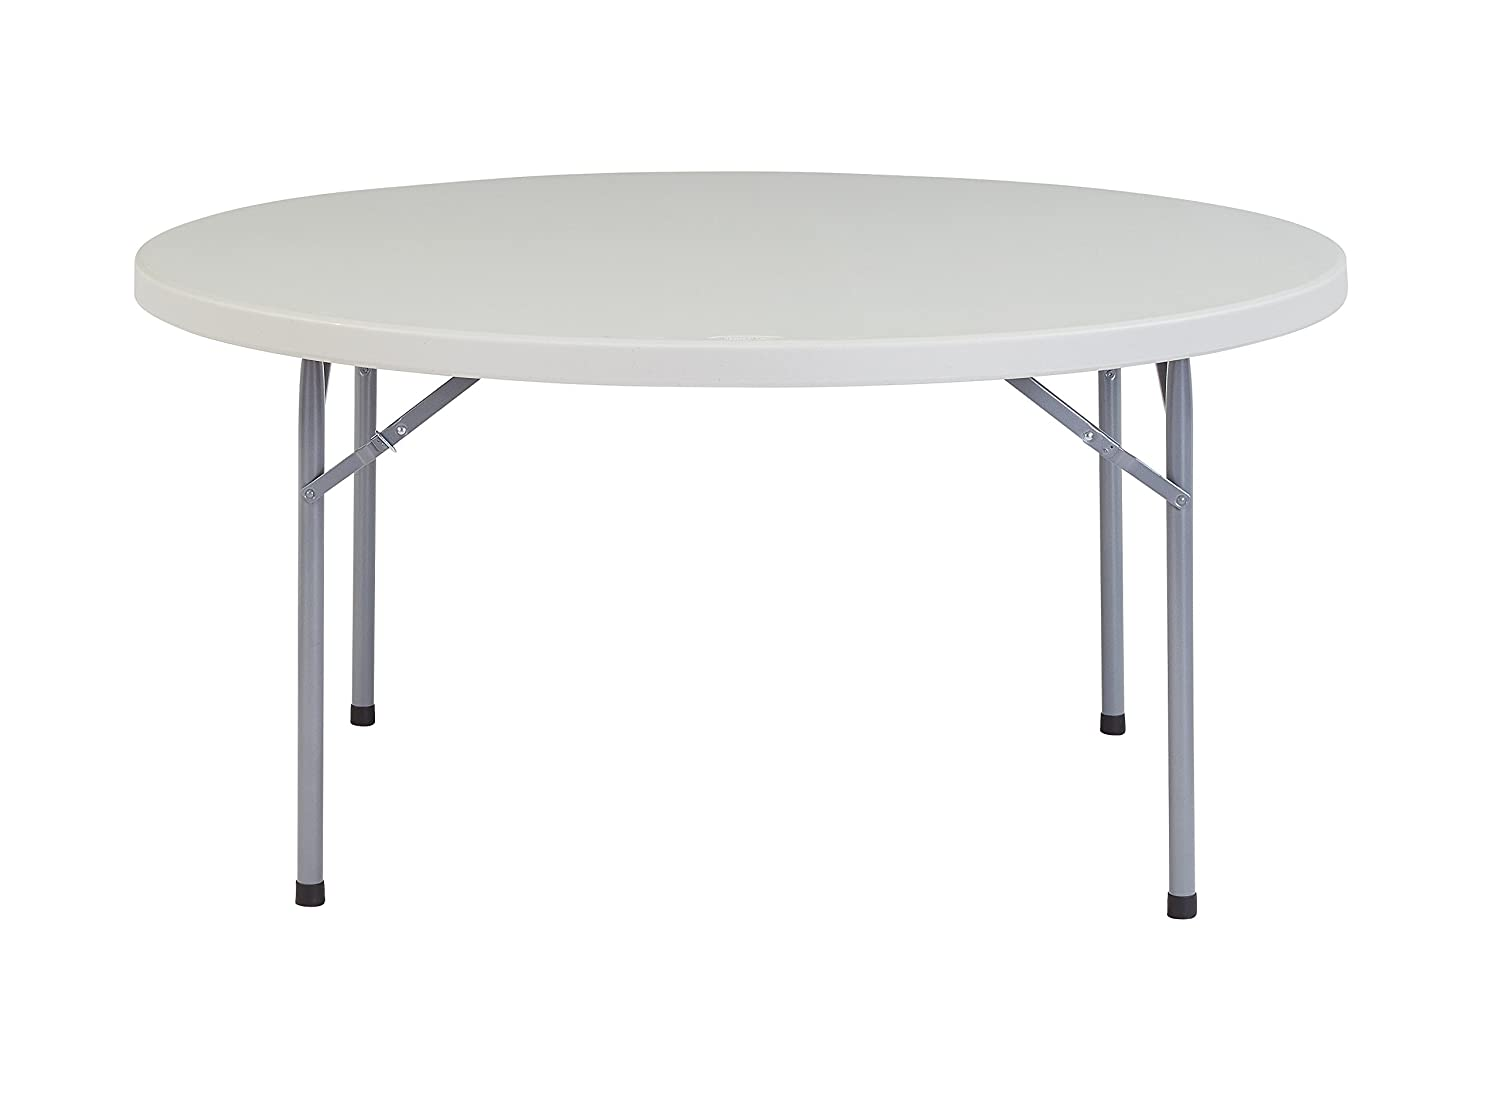 Round Folding Table, 60 Dia. 29-1 2 H, Light Spotted Gray